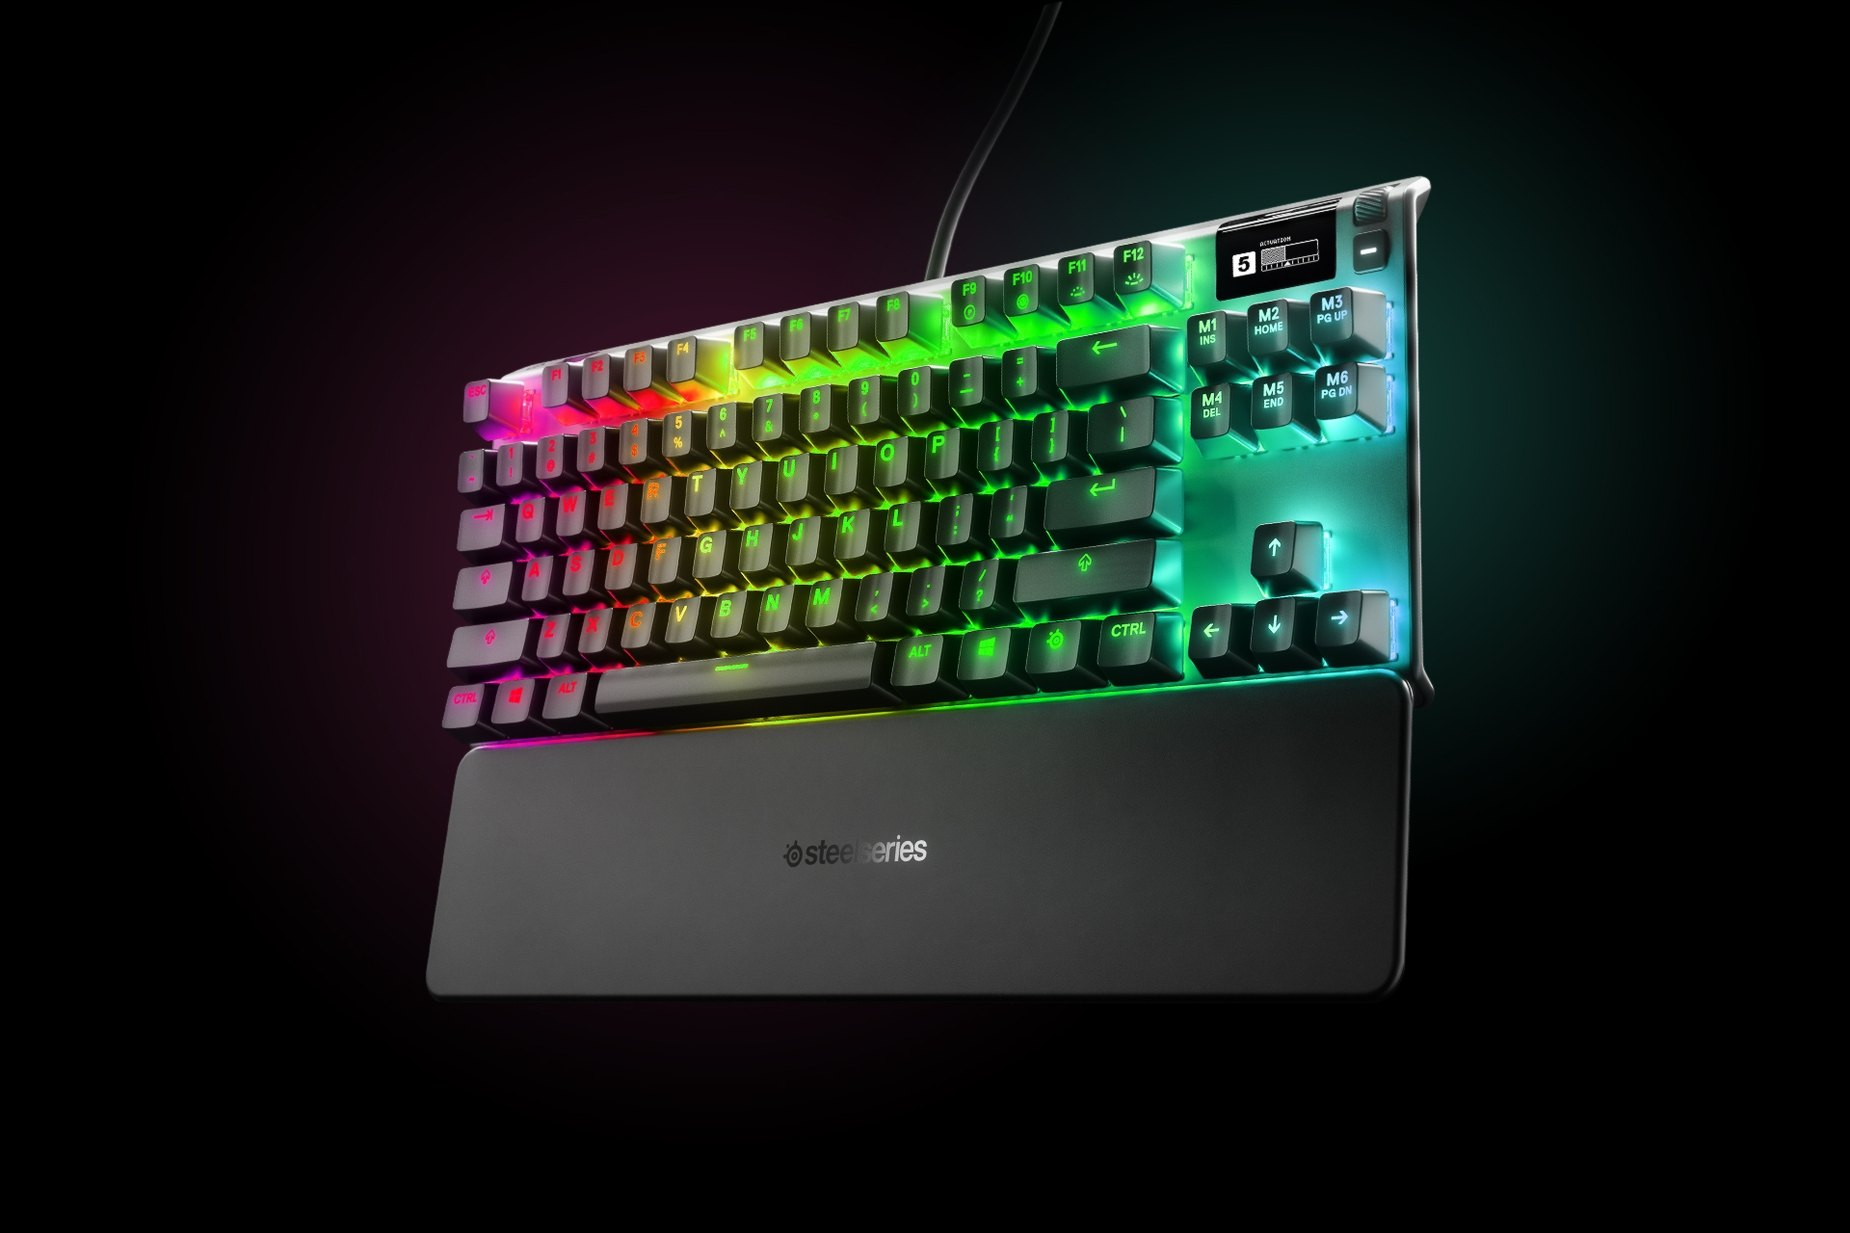 French - Apex Pro TKL gaming keyboard with the illumination lit up on dark background, also shows the OLED screen and controls used to change settings, switch actuation, and adjust audio